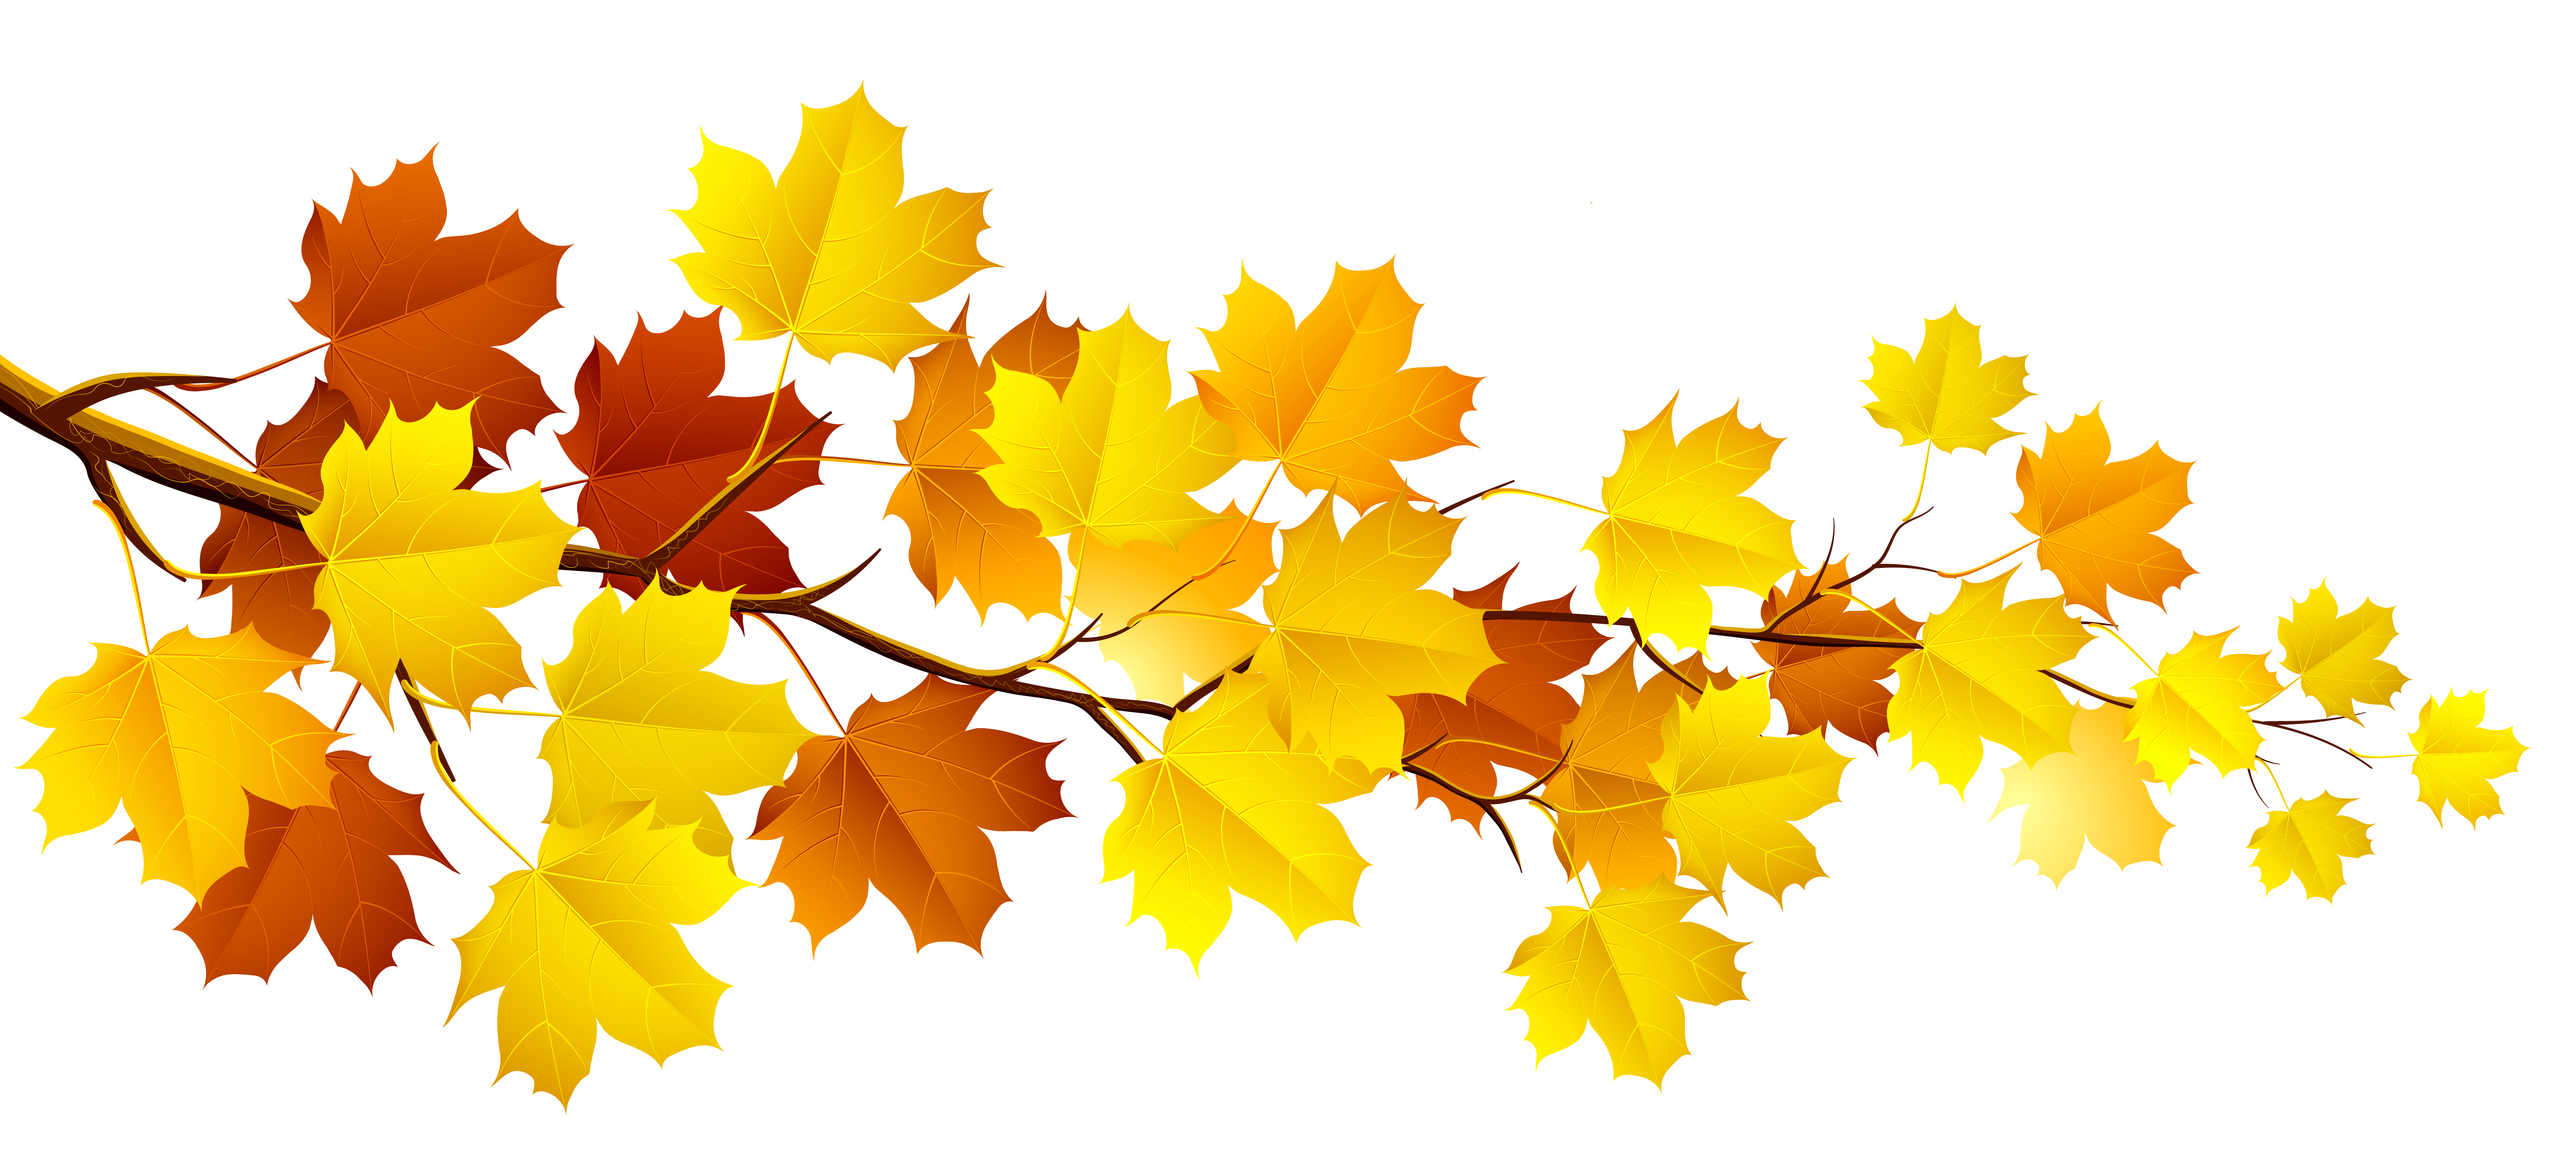 Bing clipart autumn leaves picture freeuse library Free Fall Family Cliparts, Download Free Clip Art, Free Clip Art on ... picture freeuse library